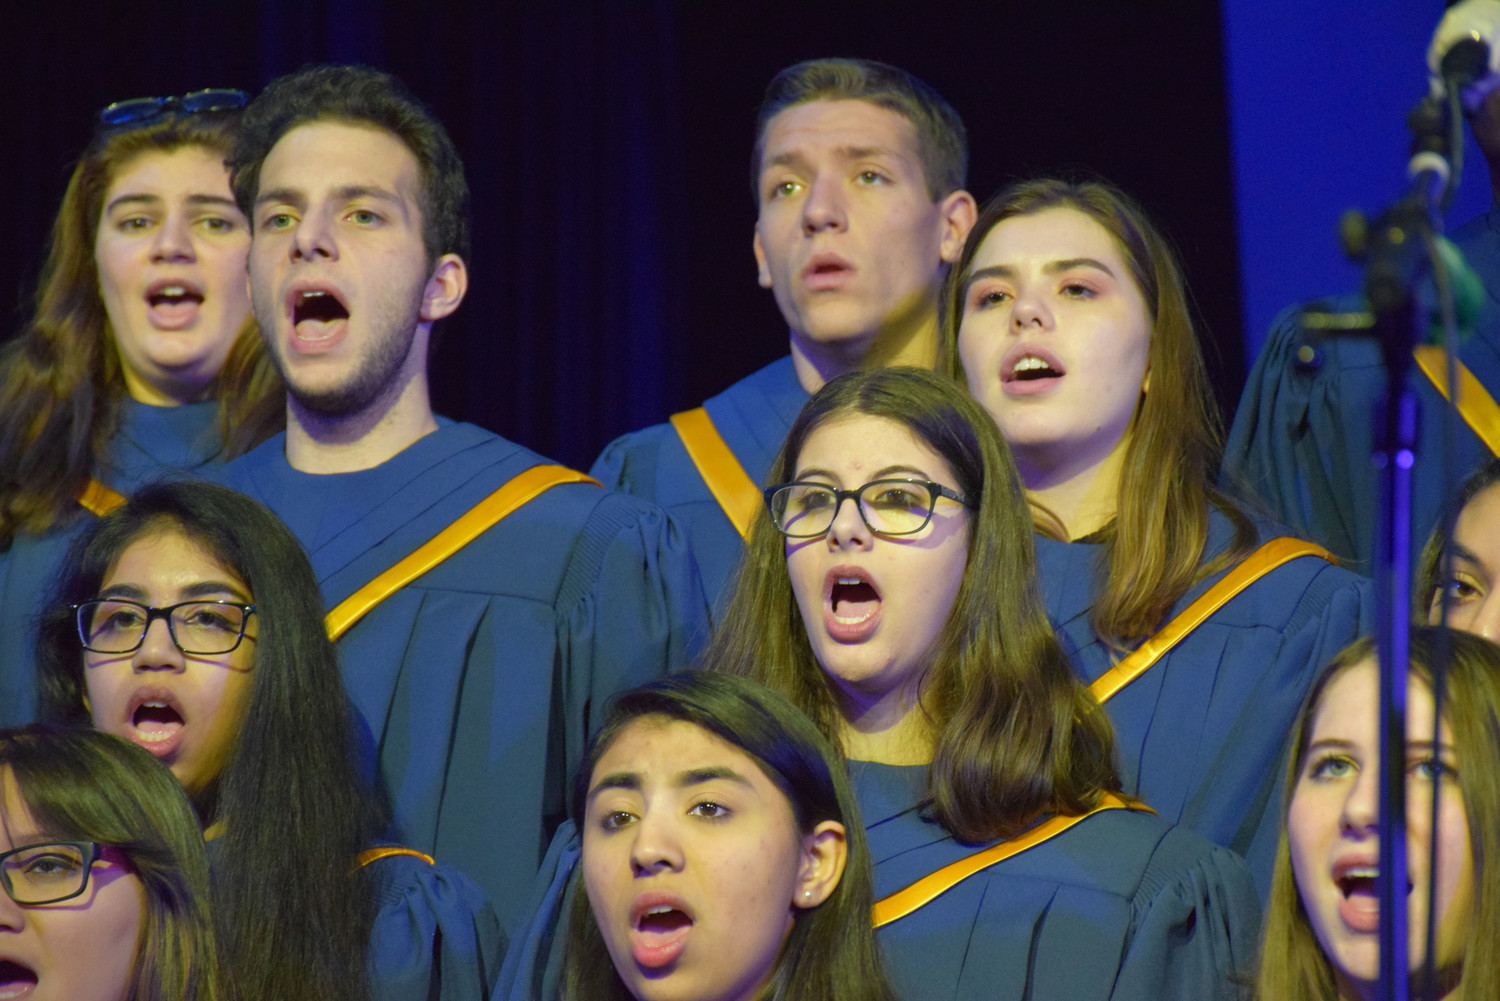 The East Meadow High School chamber choir serenaded the audience at the board of education meeting on Dec. 21.